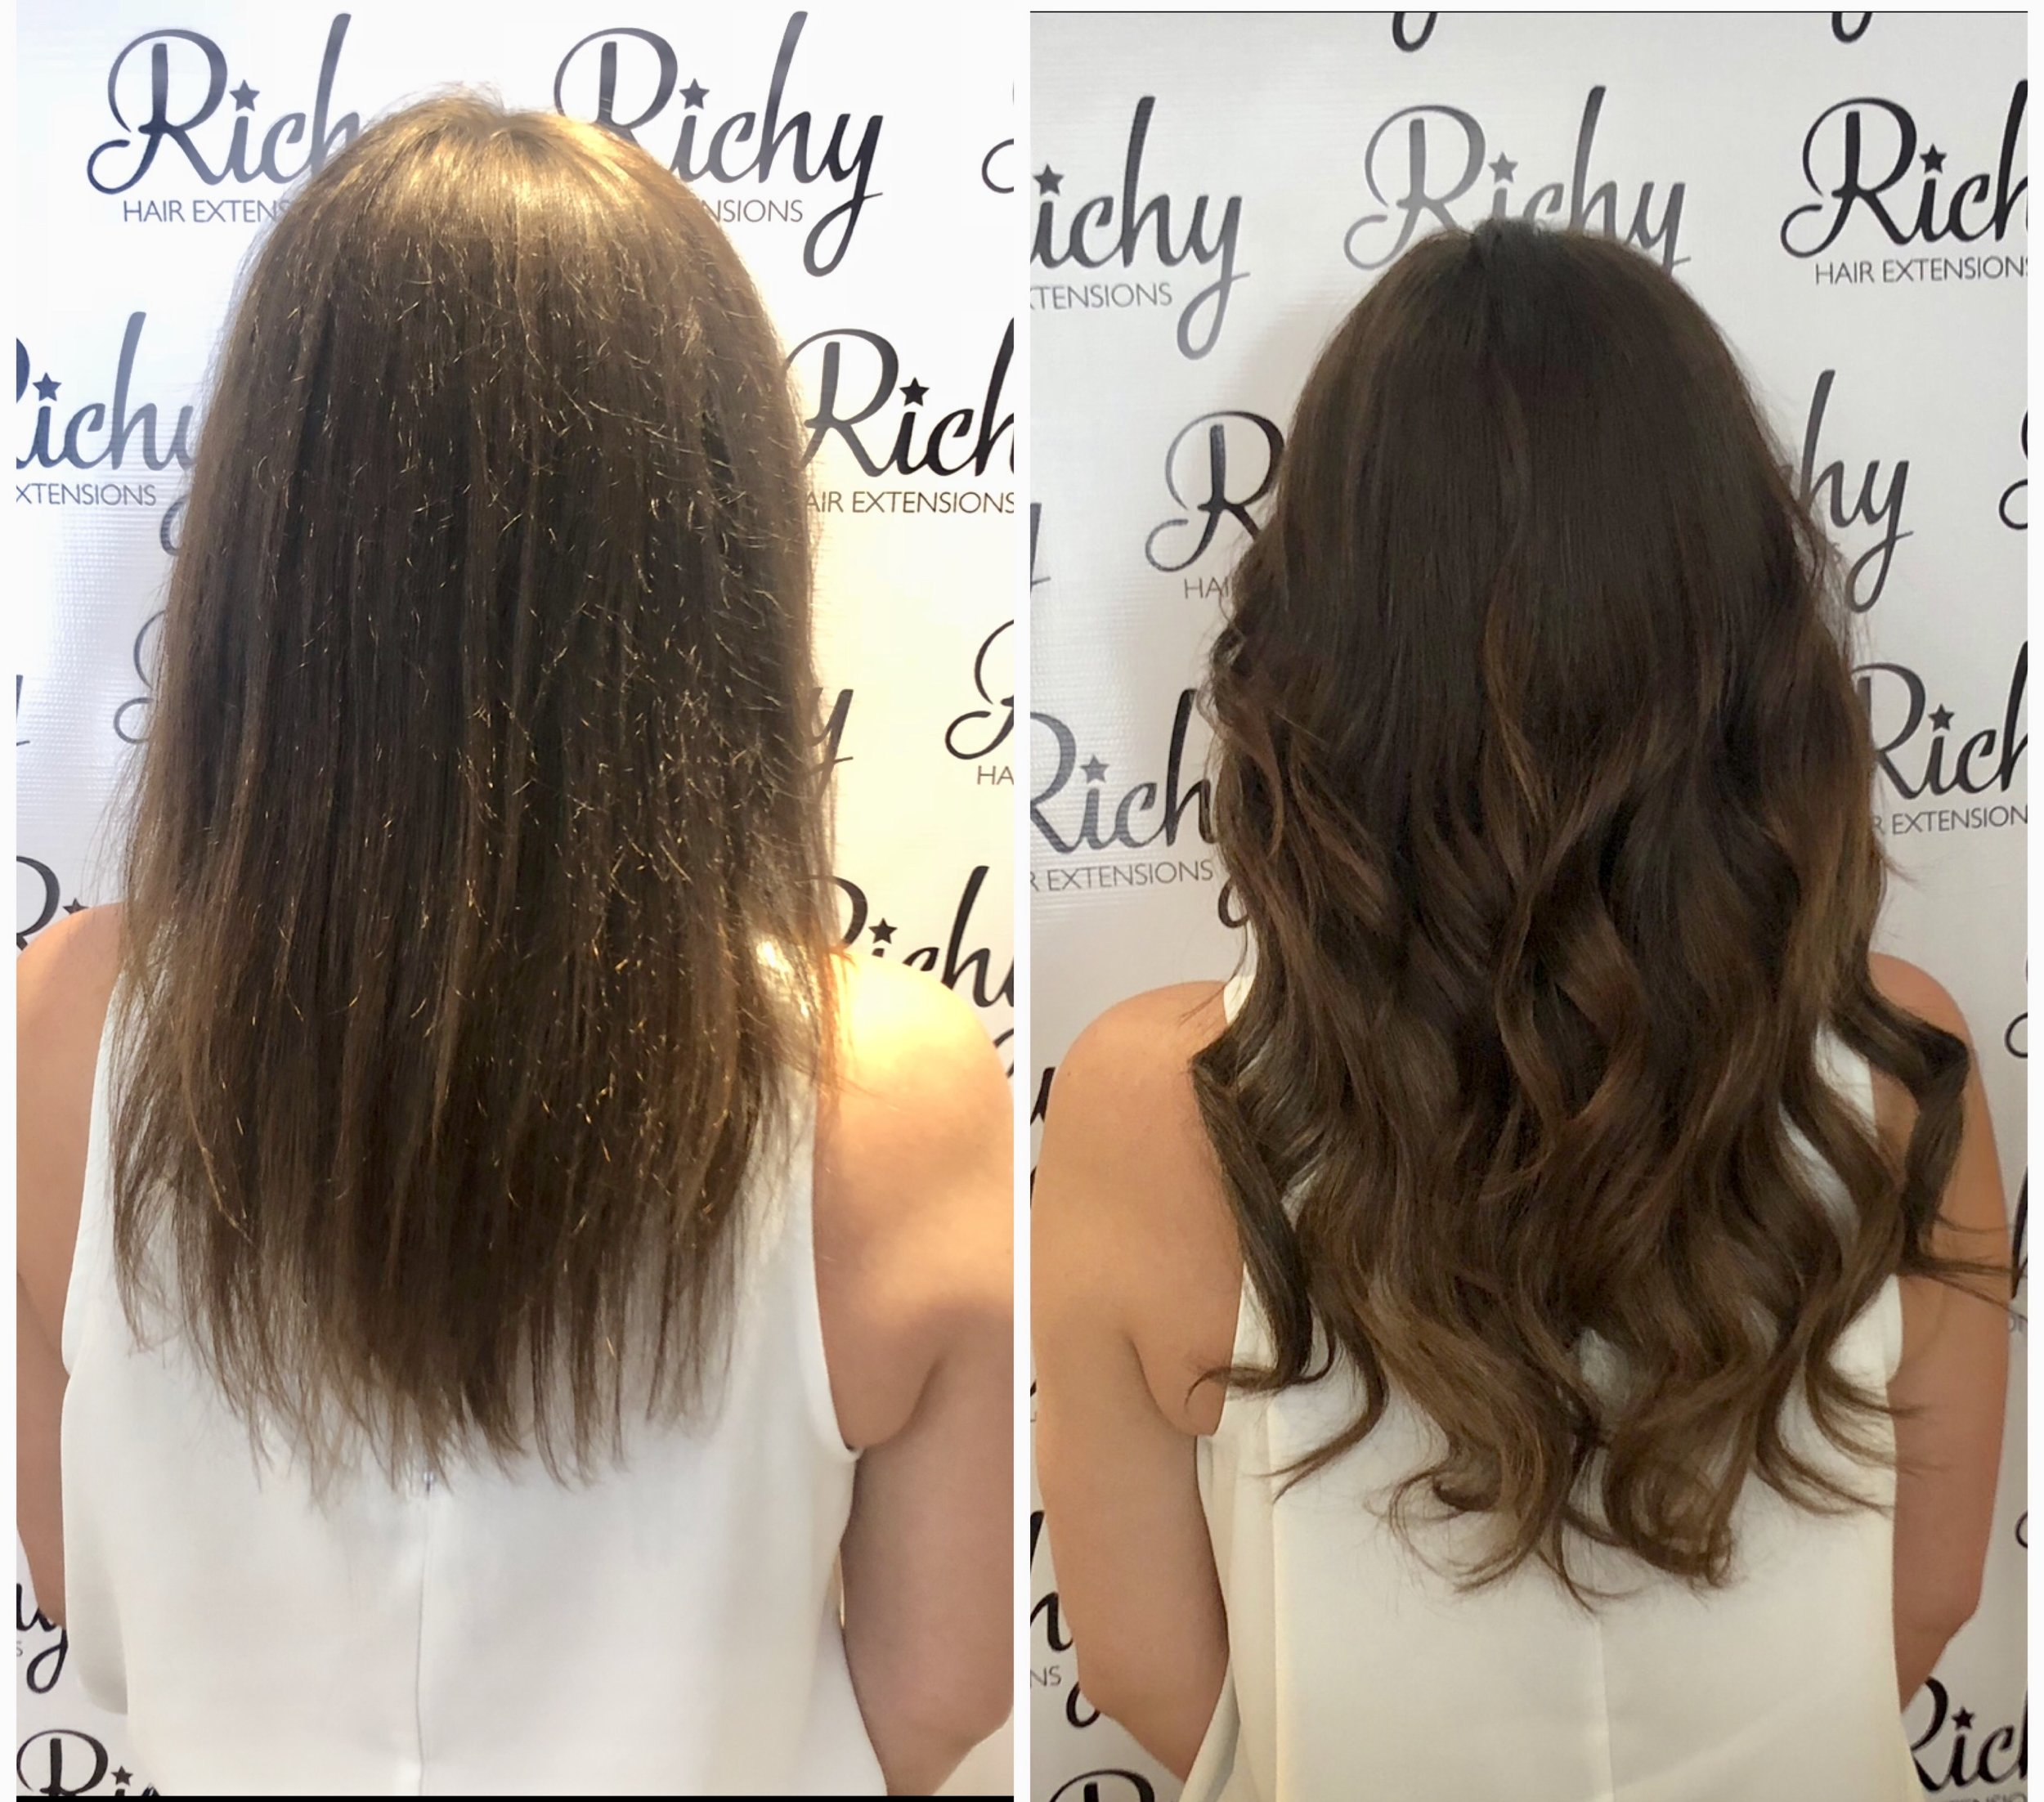 Tape Hair Extensions London